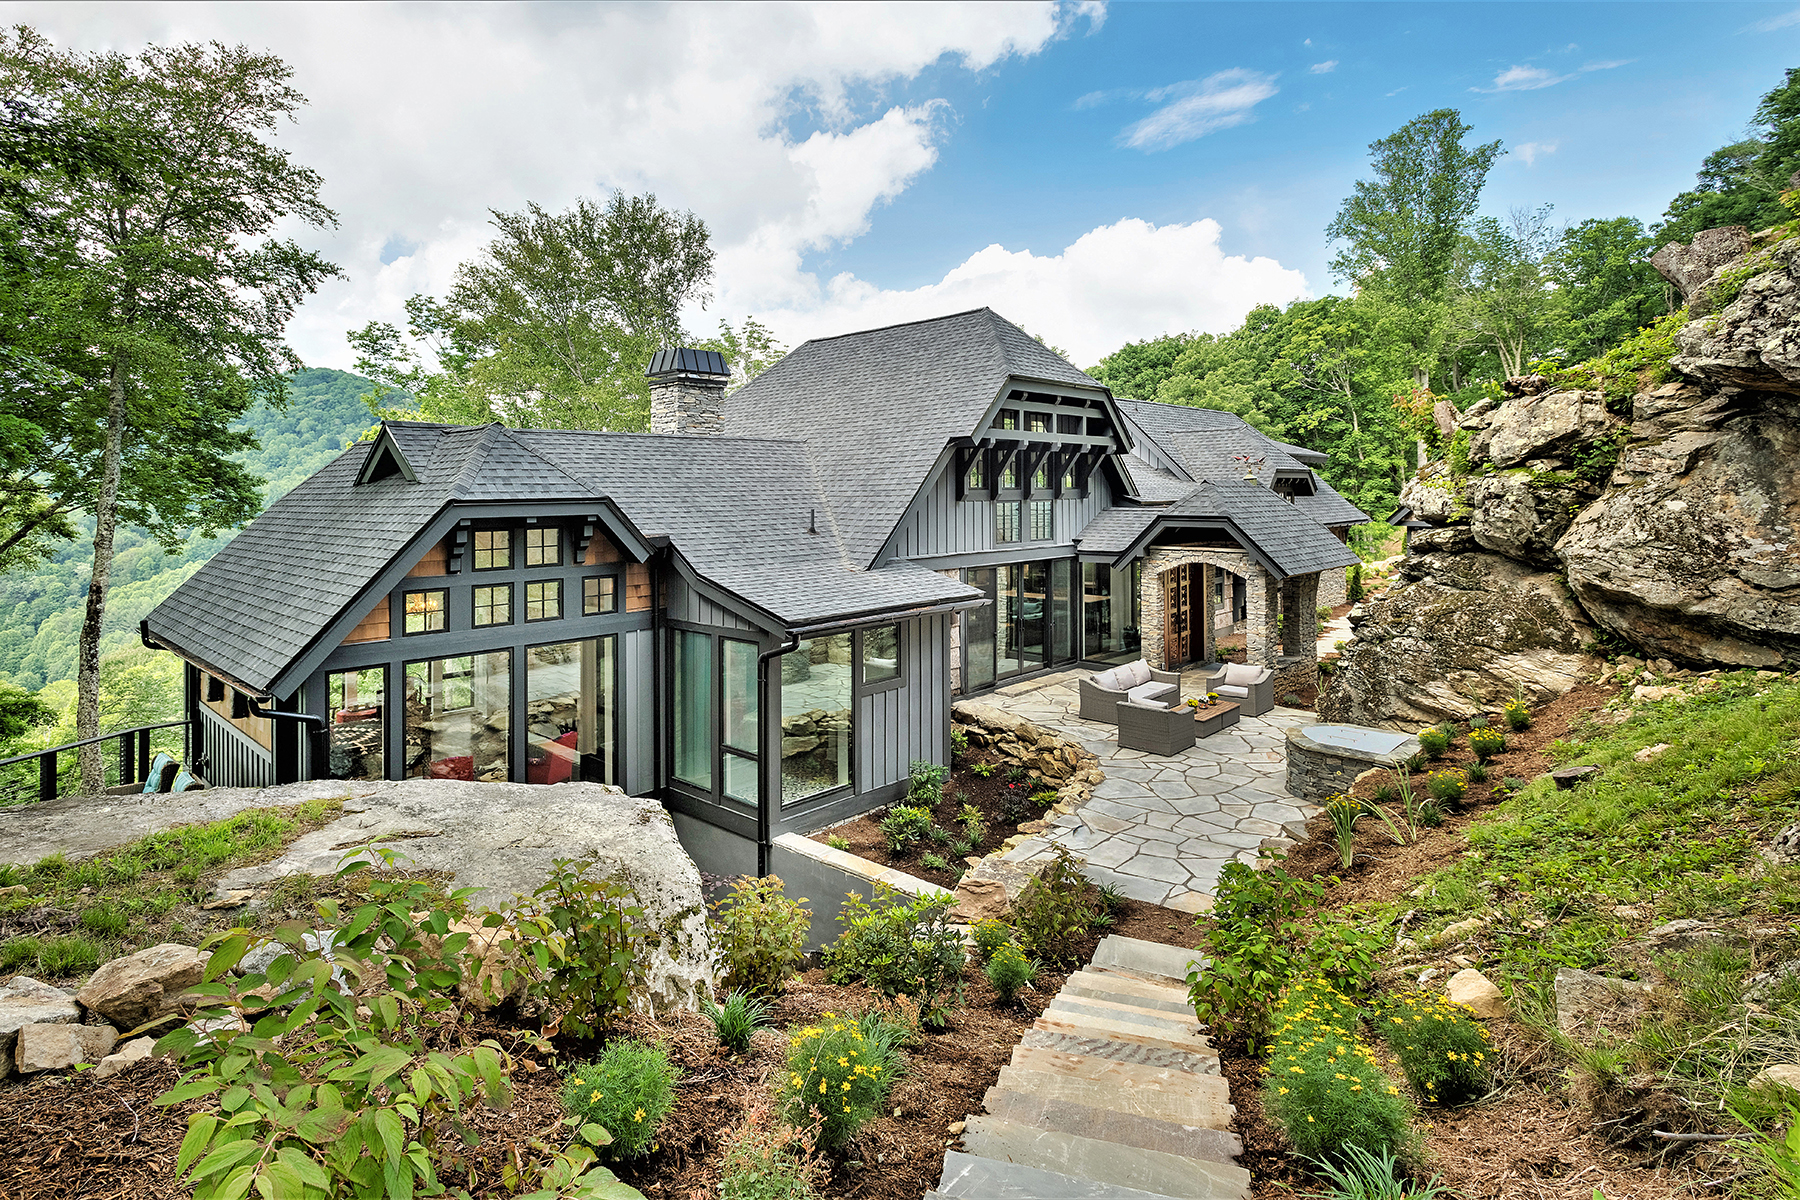 Single Family Homes for Sale at BANNER ELK - THE LODGES AT EAGLES NEST 652 Eagles Nest Trl Banner Elk, North Carolina 28604 United States